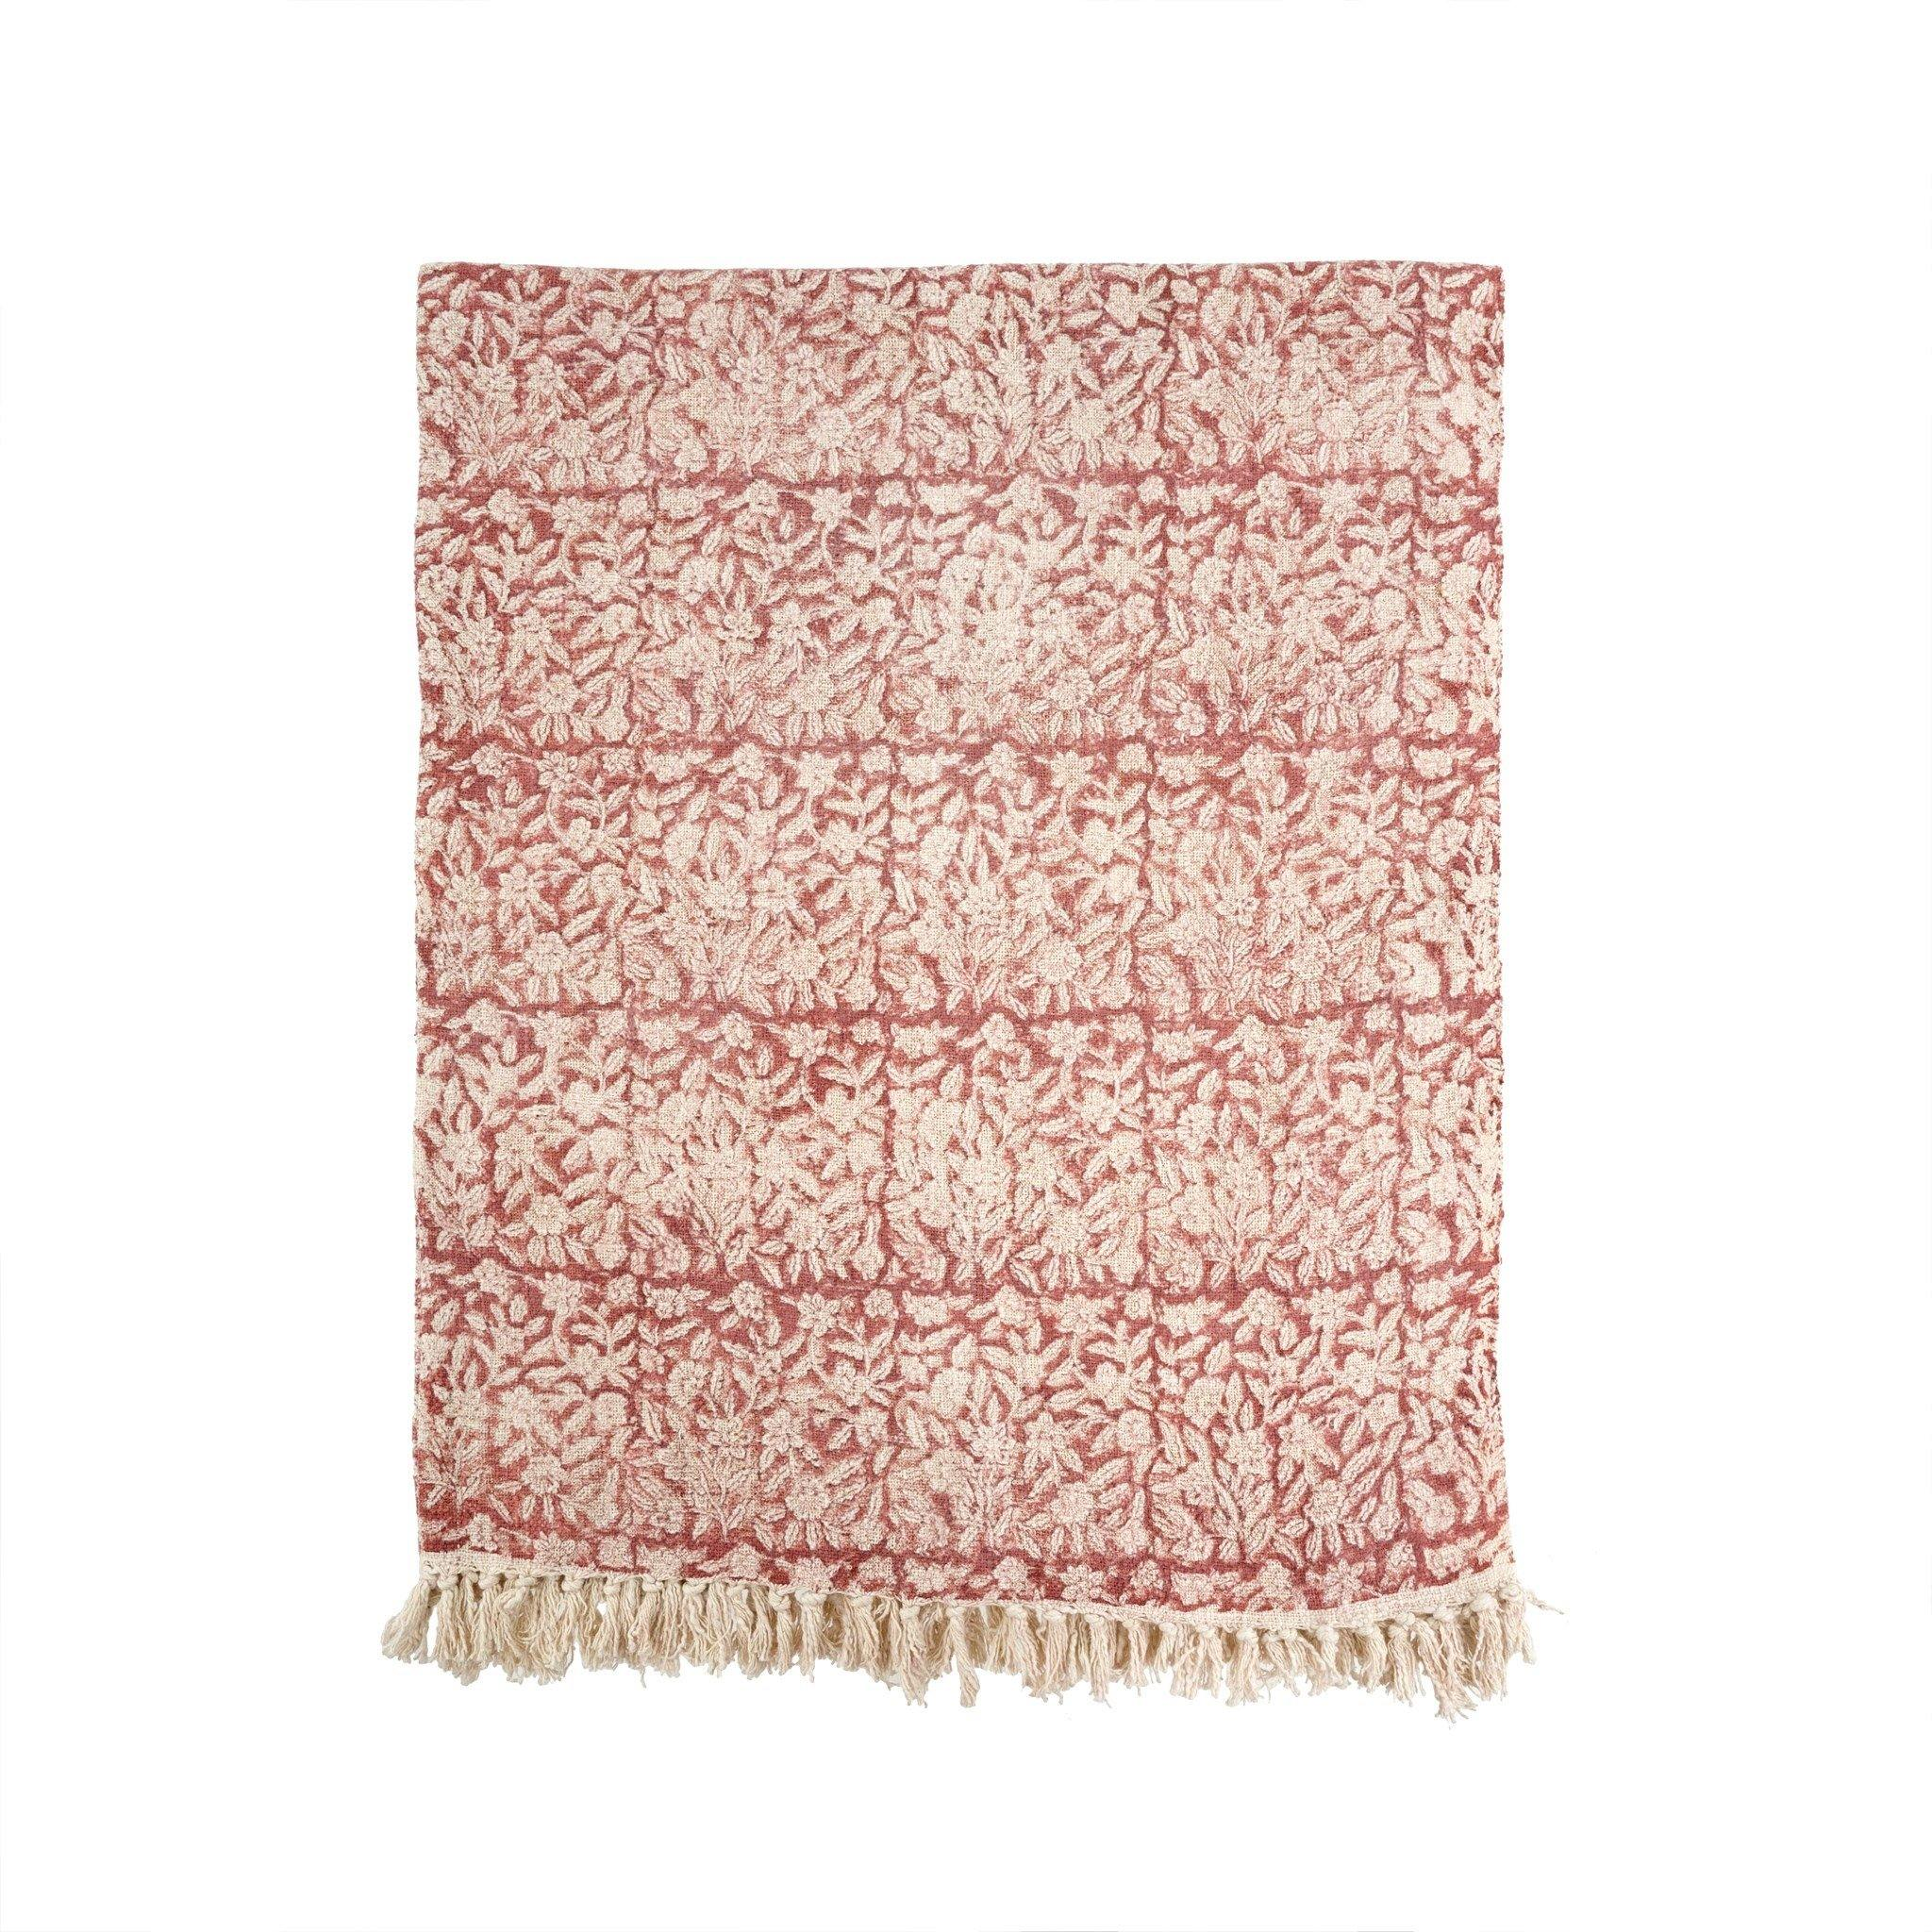 Celeste Throw Coral - Coming January 2021 - Netties Expressions